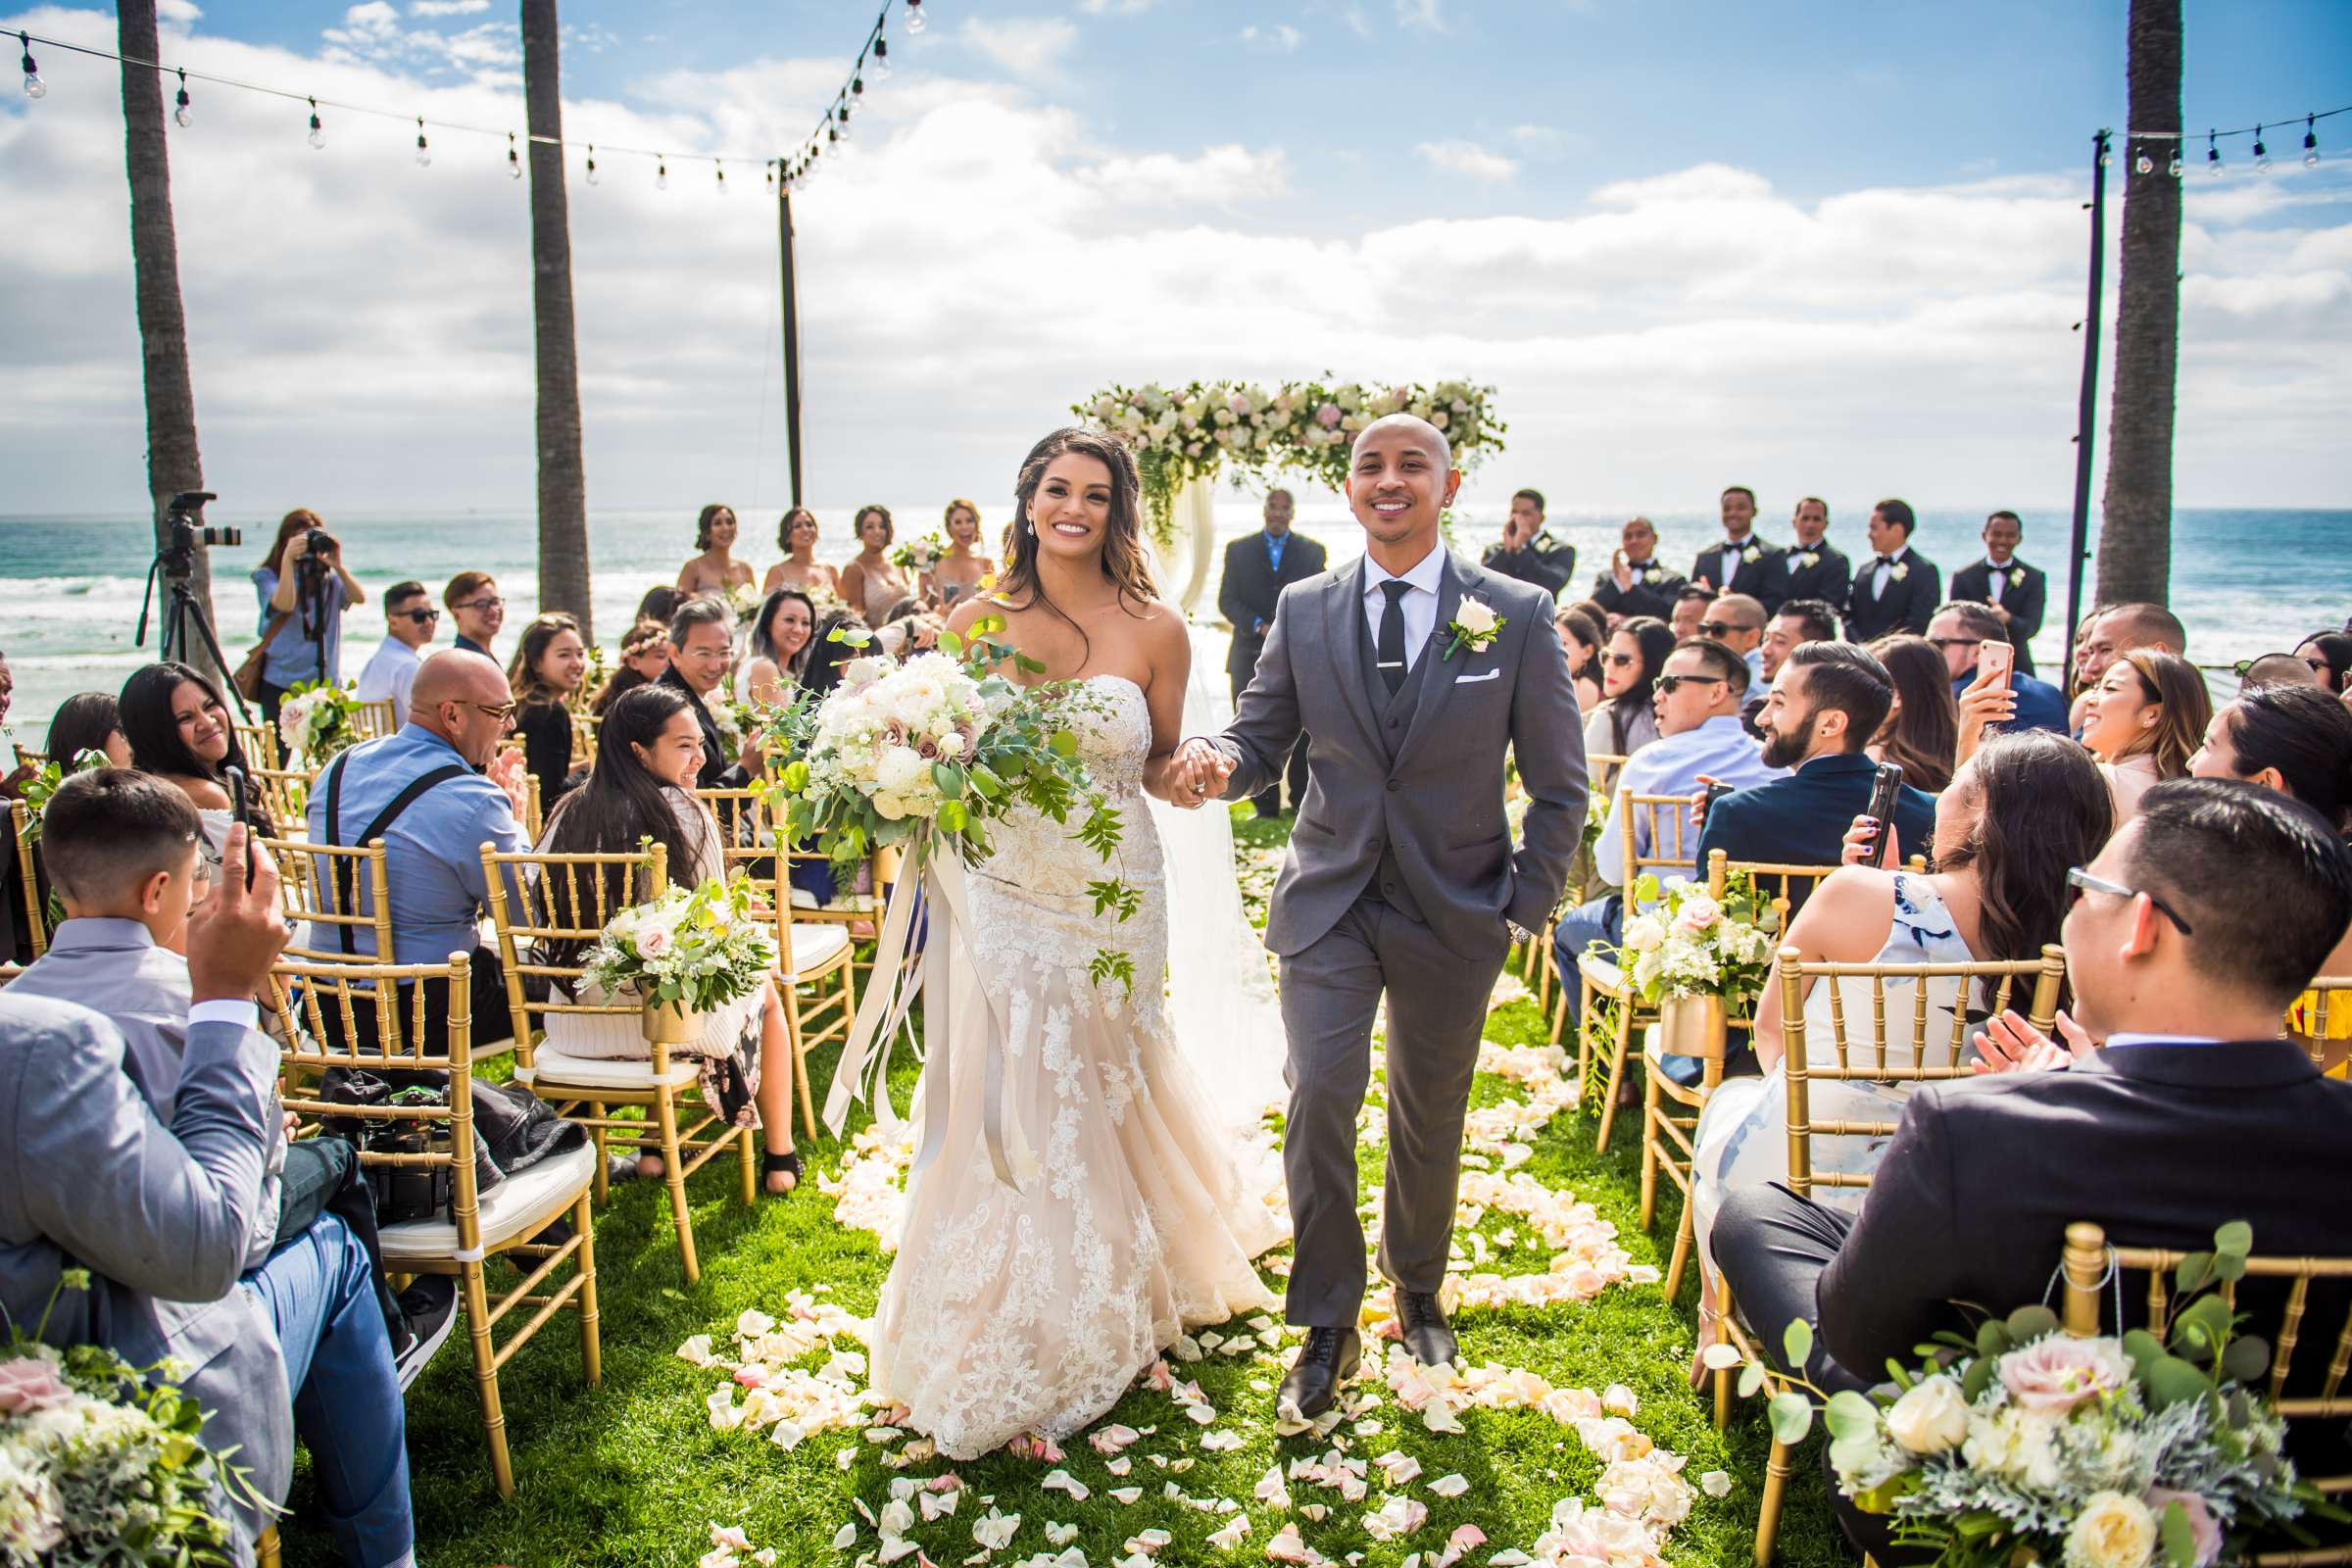 Scripps Seaside Forum Wedding coordinated by Lavish Weddings, Cindy and Justin Wedding Photo #381837 by True Photography